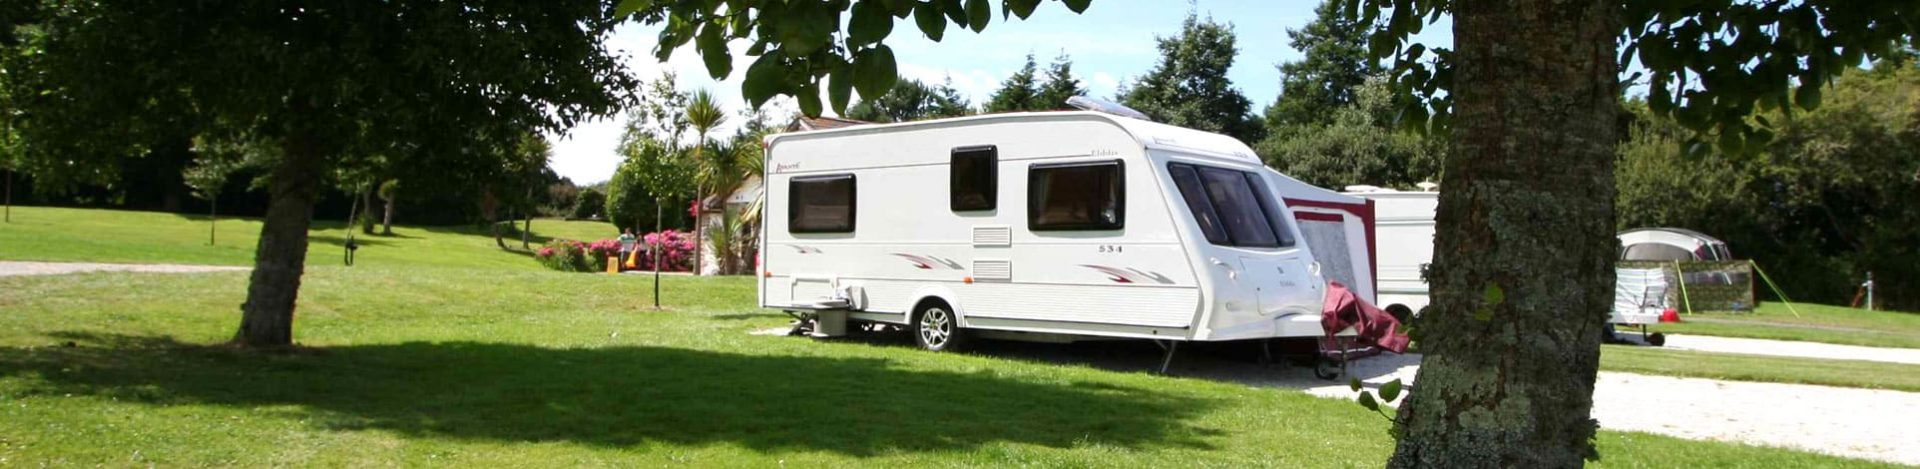 Holiday park touring pitch